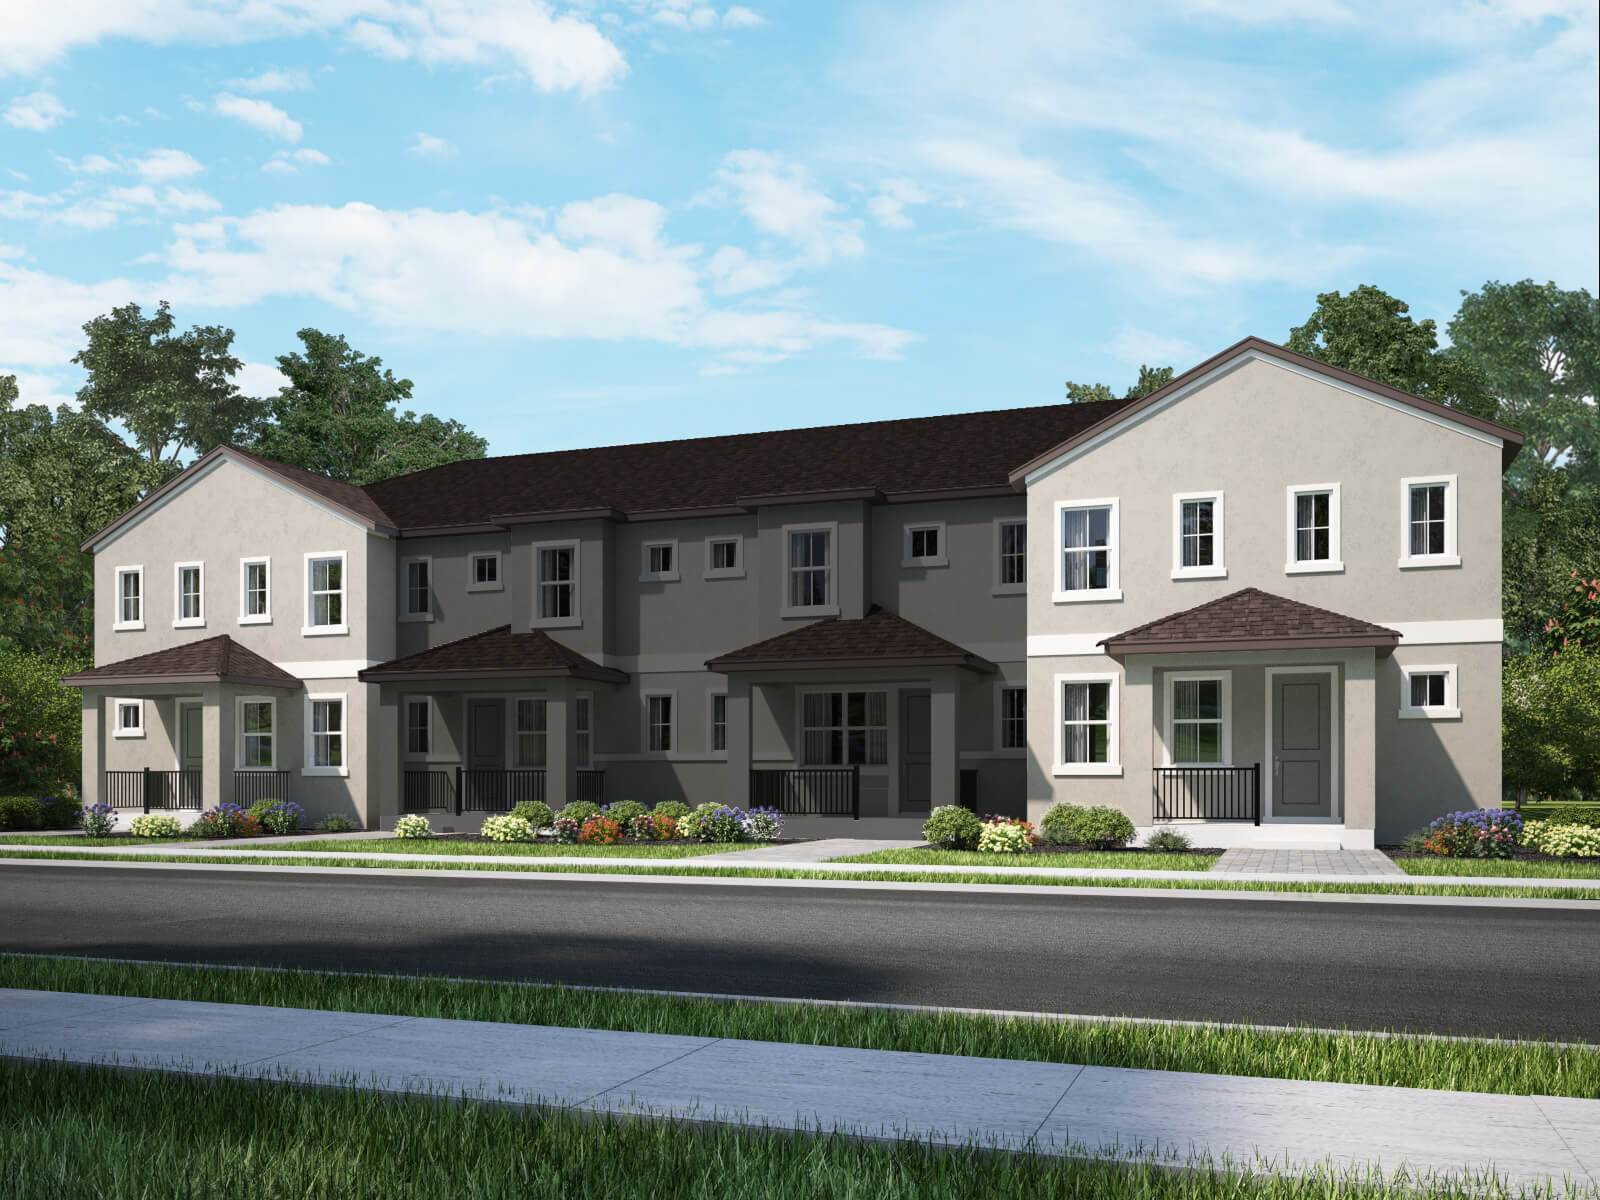 Homes In Watermark Townhomes By Meritage Homes. Meritage Homes In Winter  Garden, FL